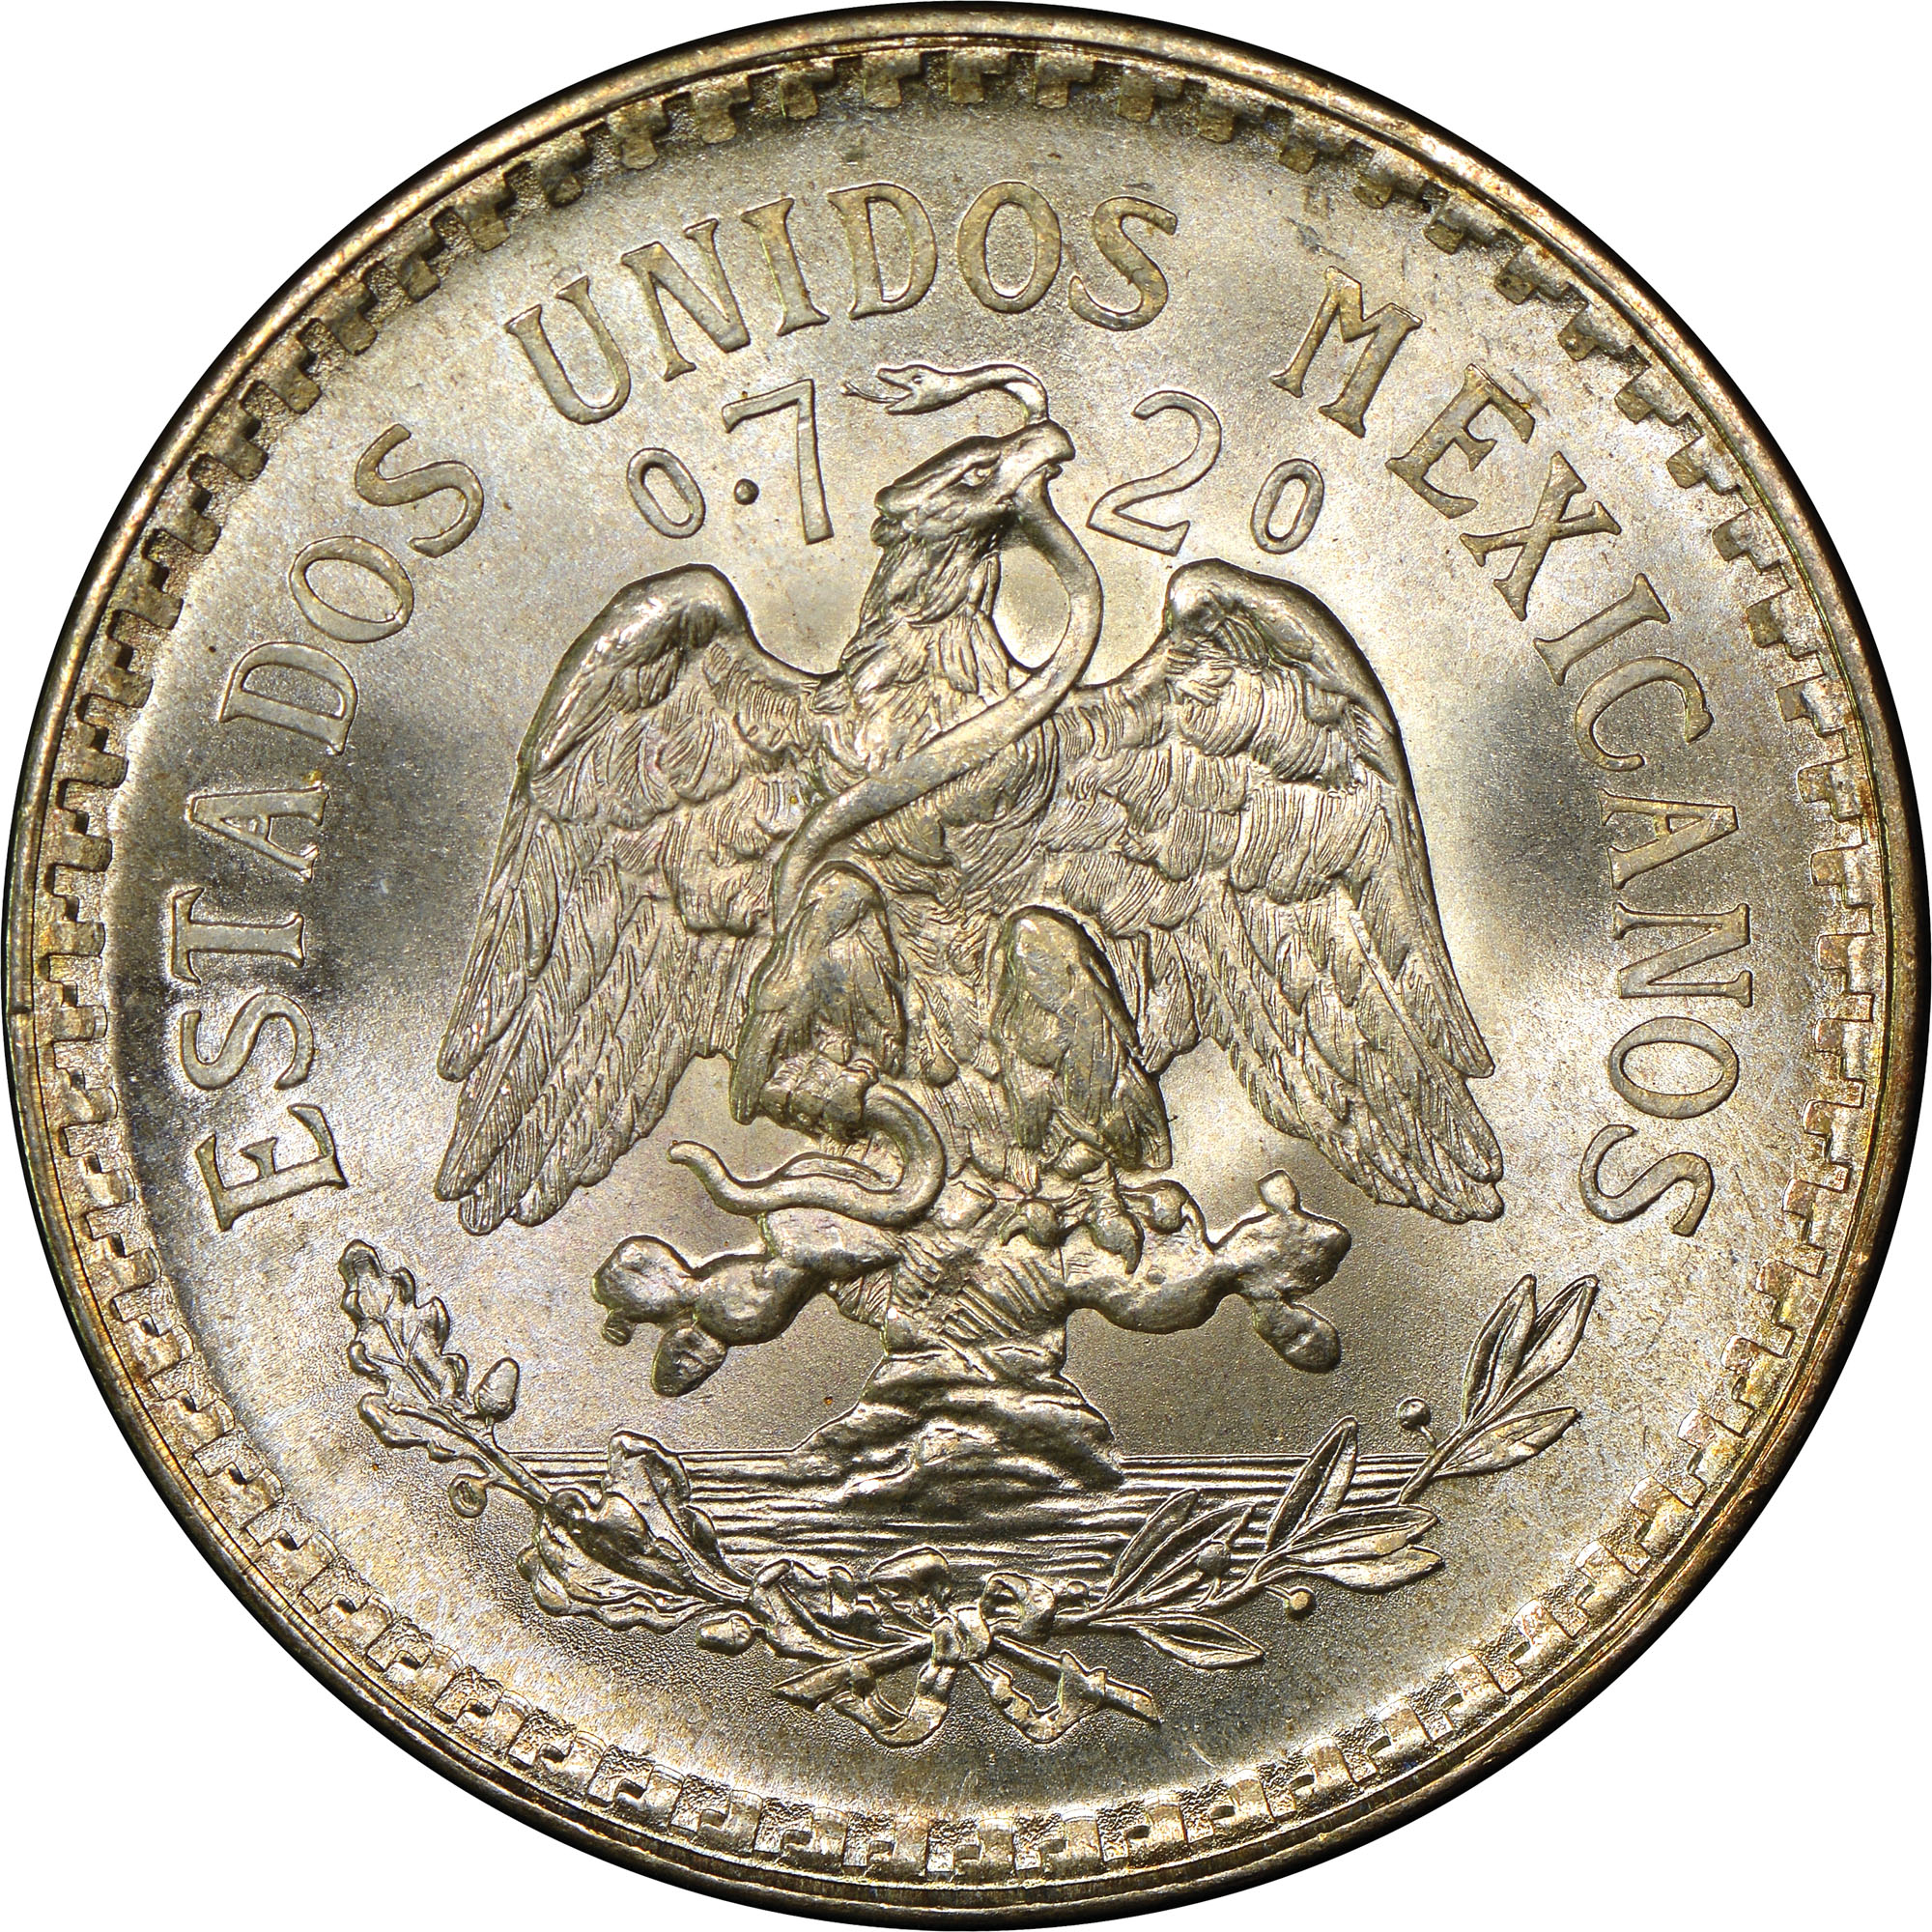 Chsb Coin Chart Values Wausau Wi Coin Dealers Phone Number